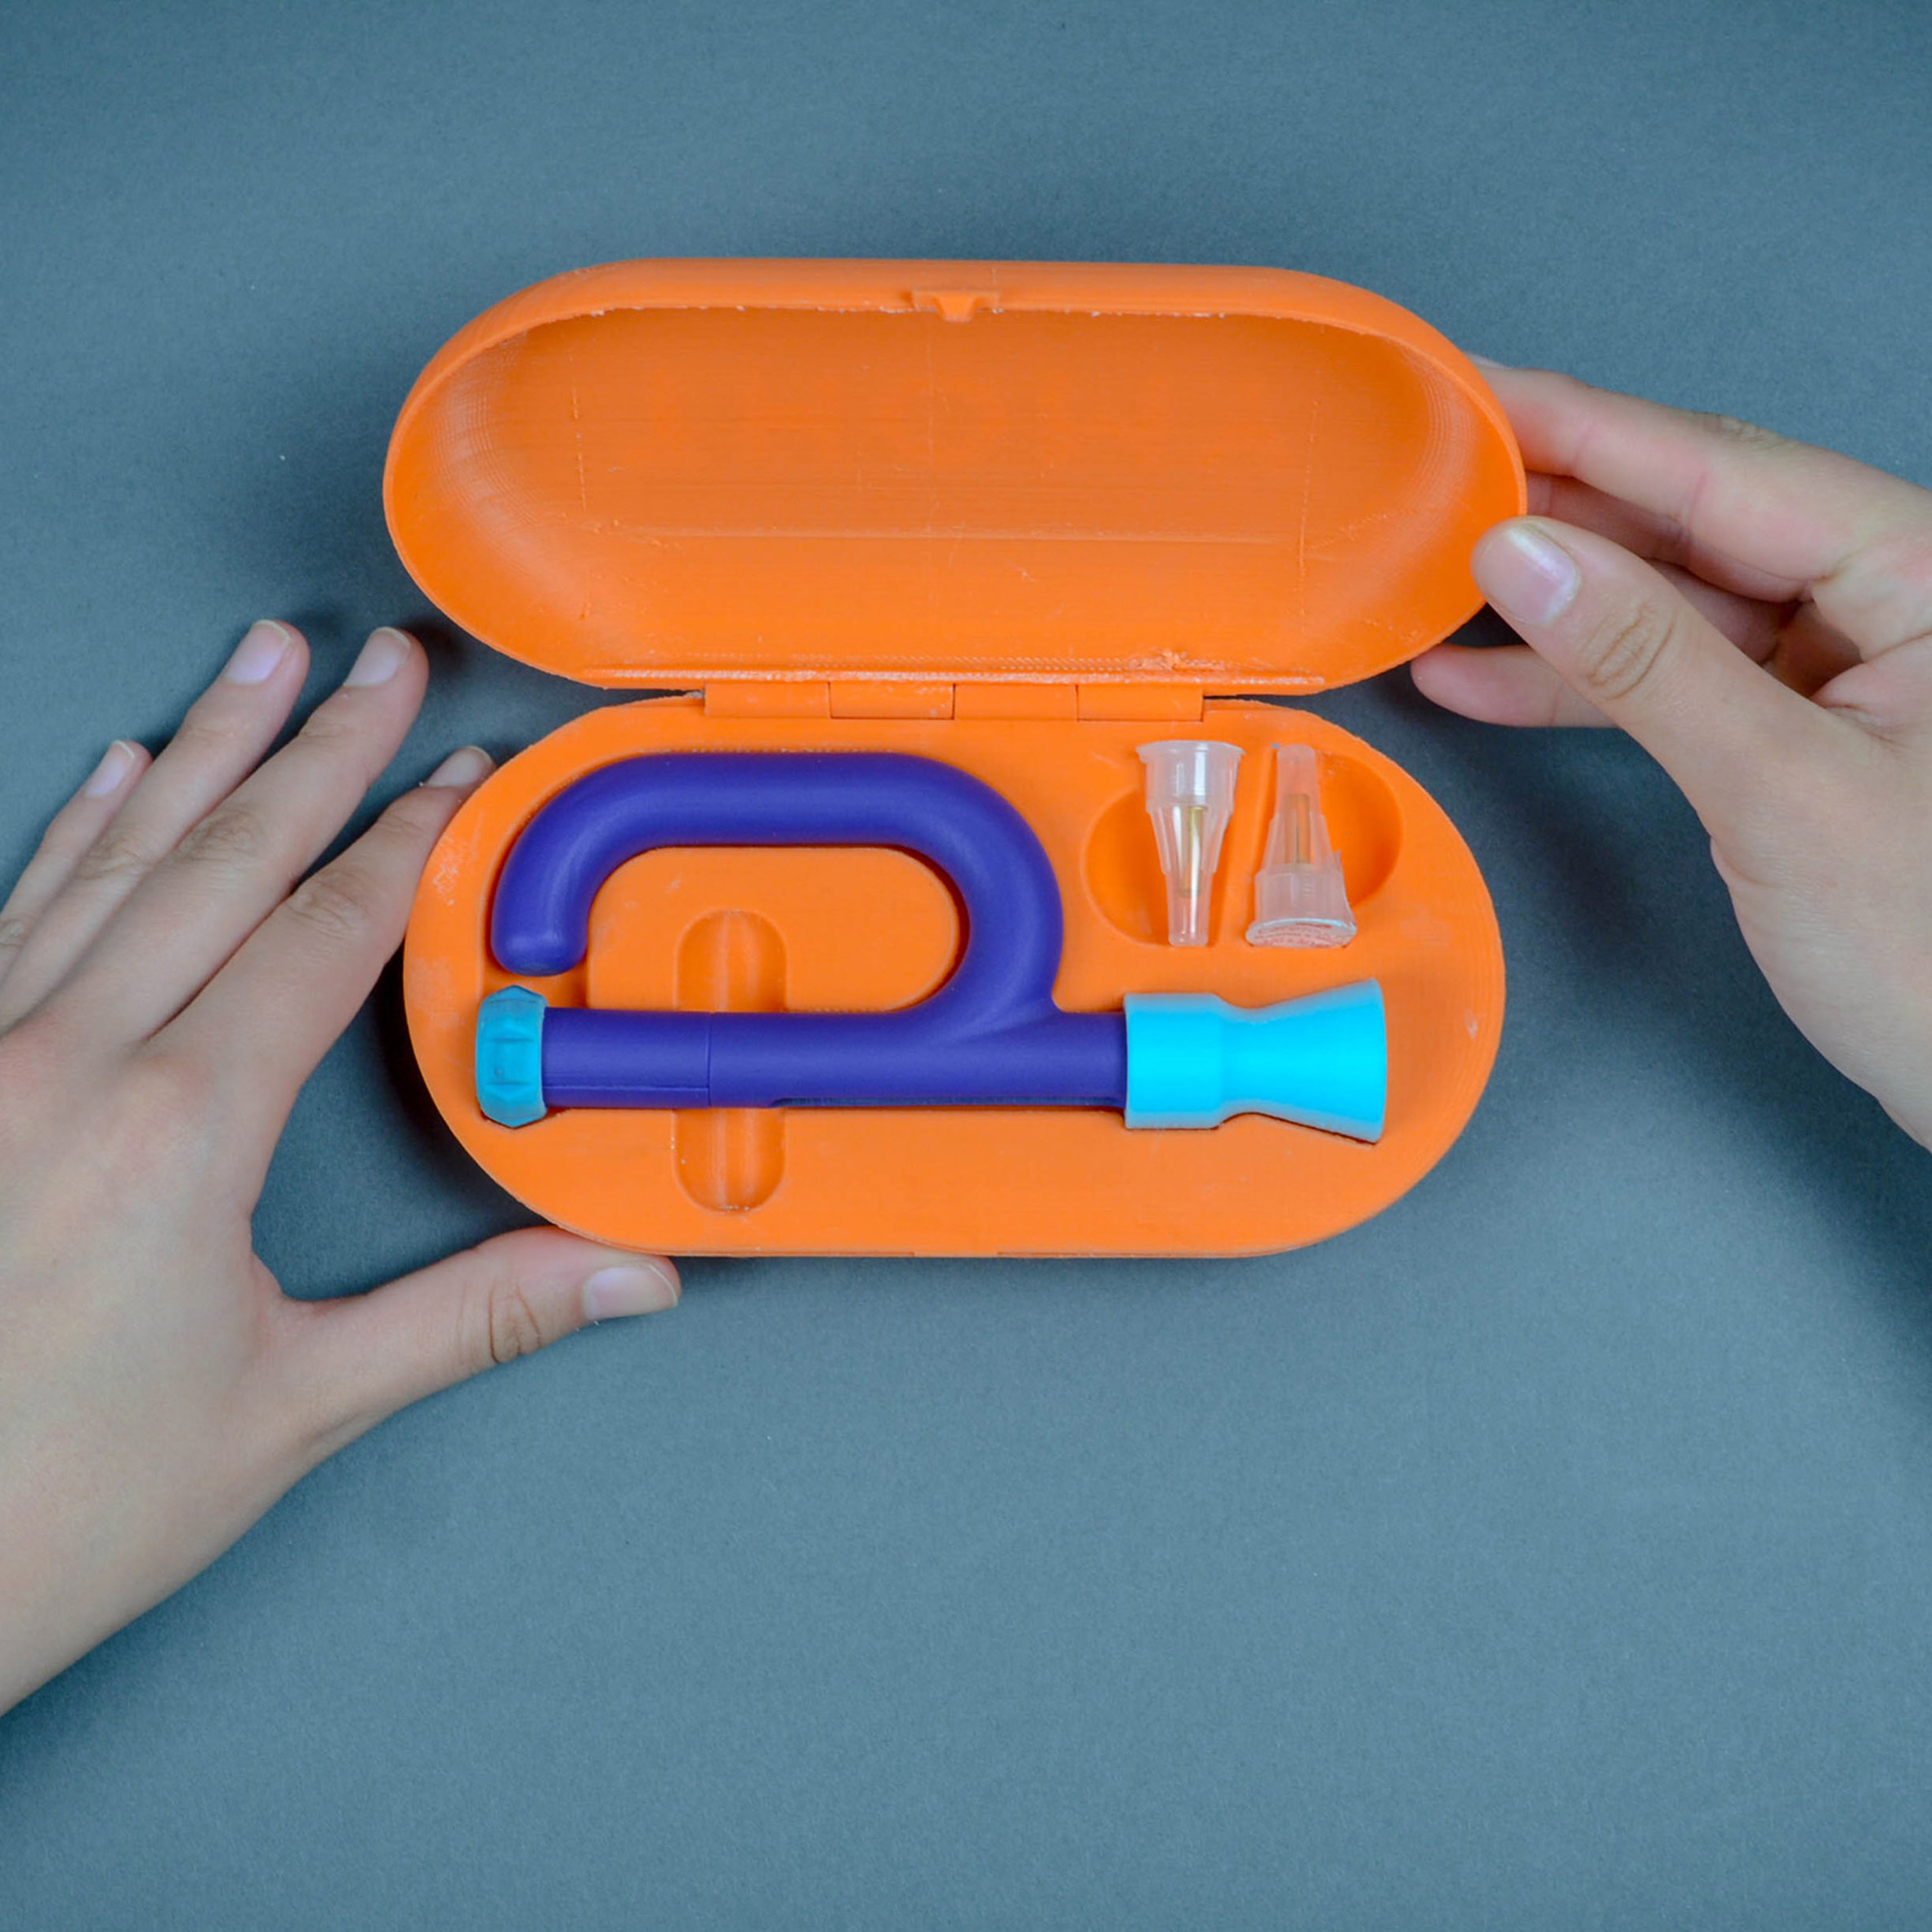 Thomy toolkit could make life easier for children with type-1 diabetes